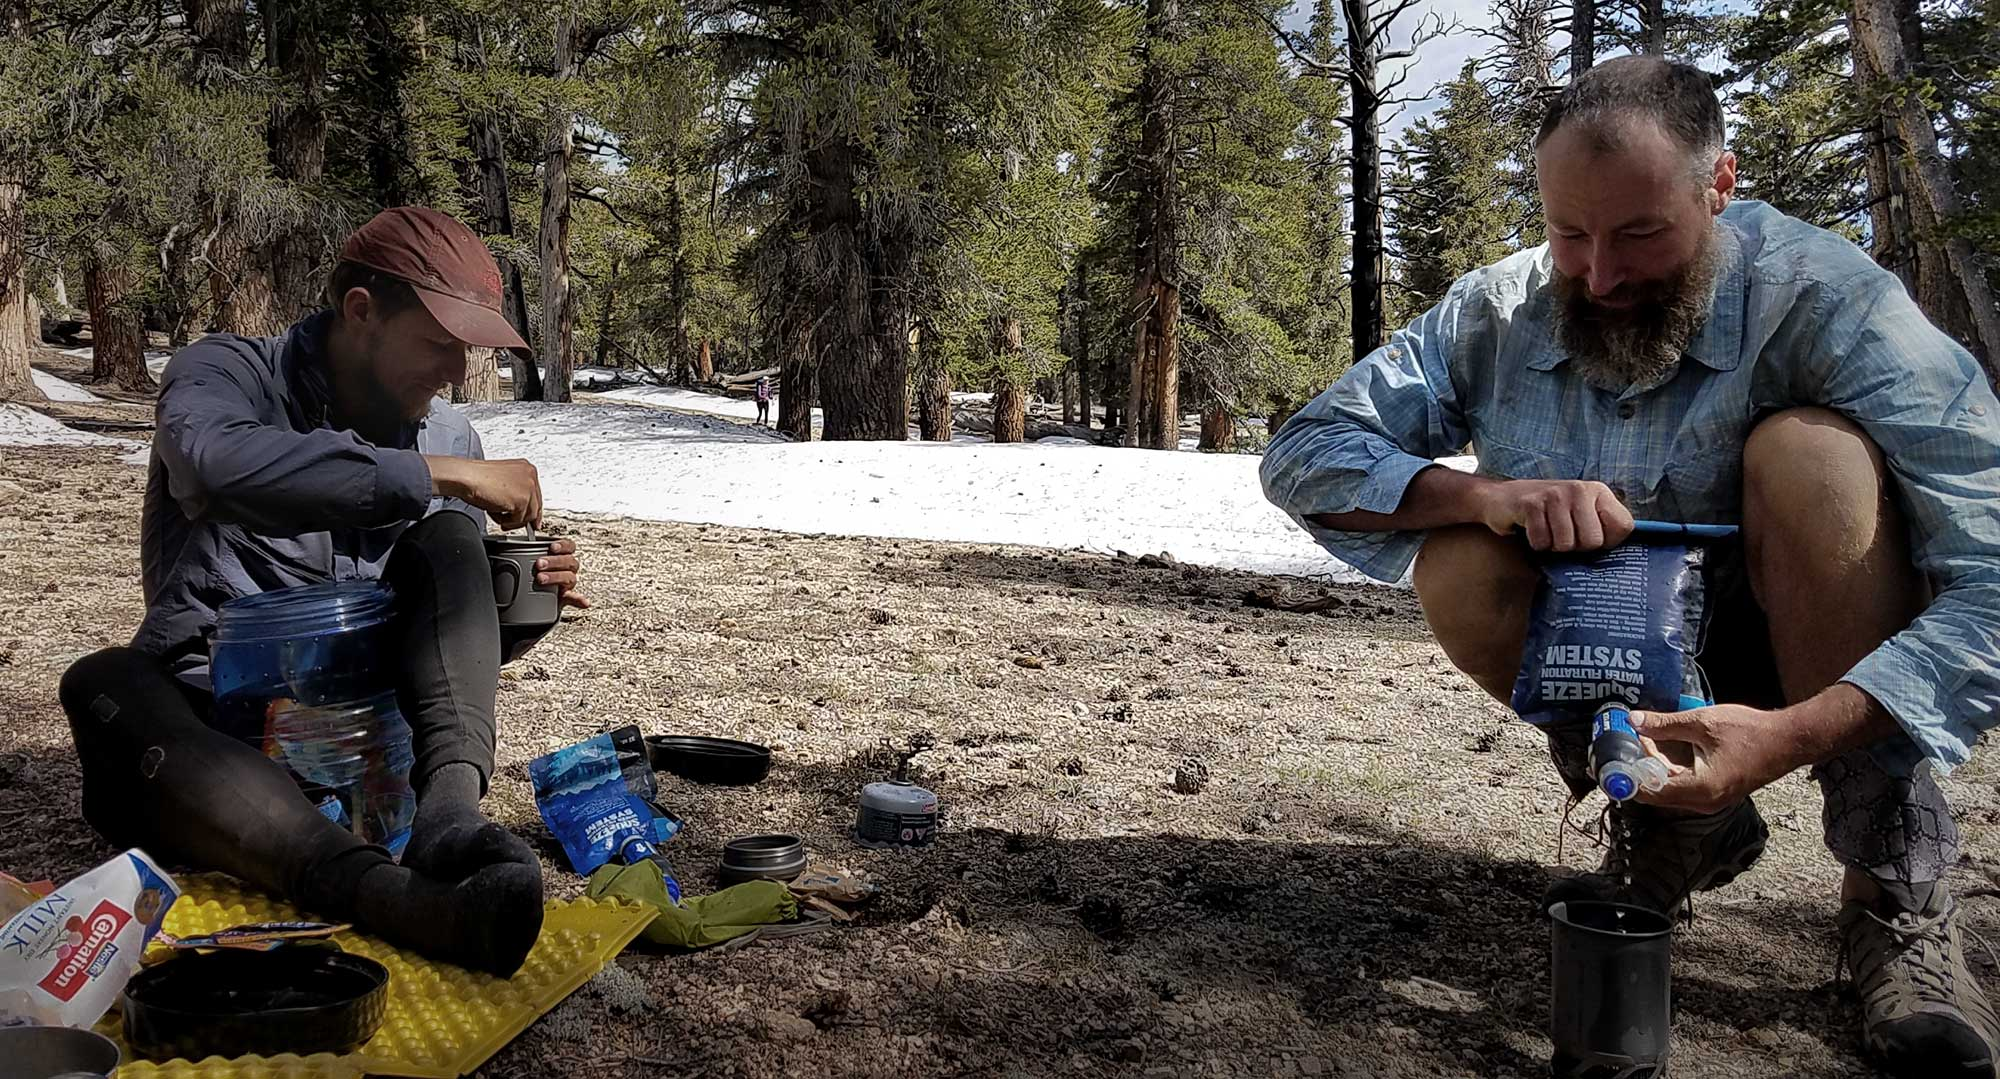 PCT hikers filtering water with Sawyer Squeeze filters. Photo by: Malin Klingsell